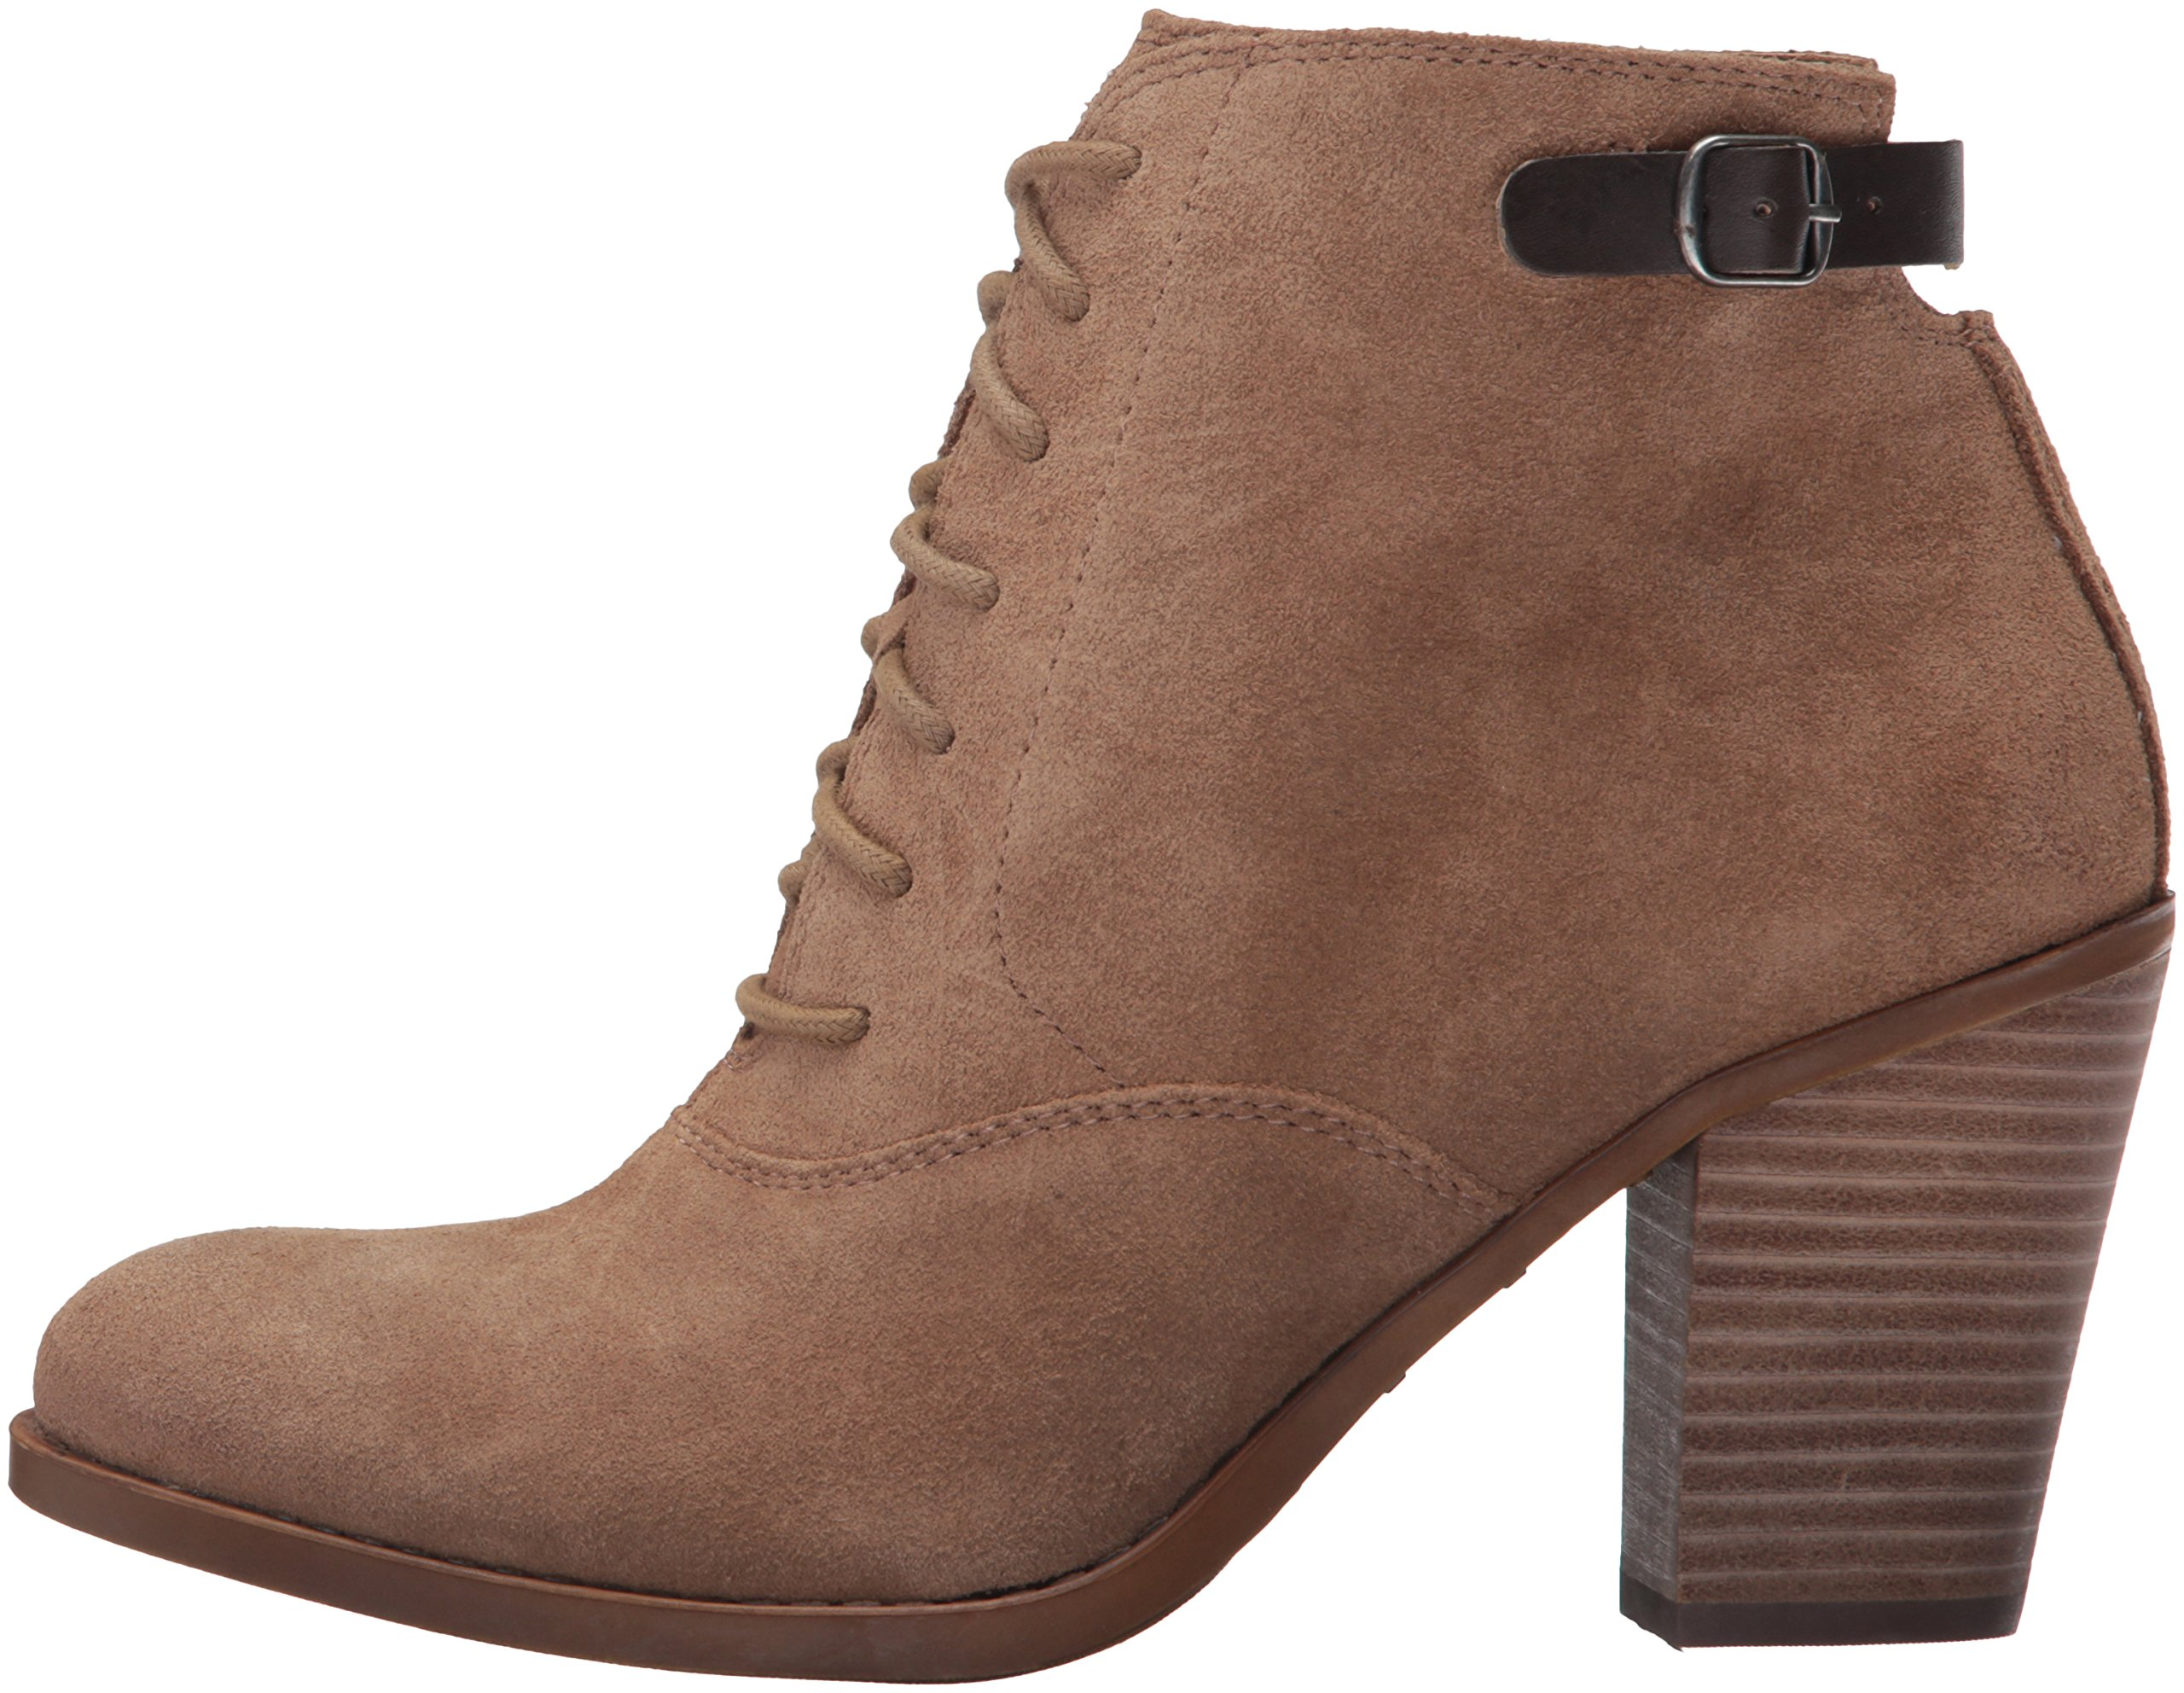 Lucky Brand Women's Echoh Ankle Bootie, Sesame, 10 M US by Lucky Brand (Image #5)